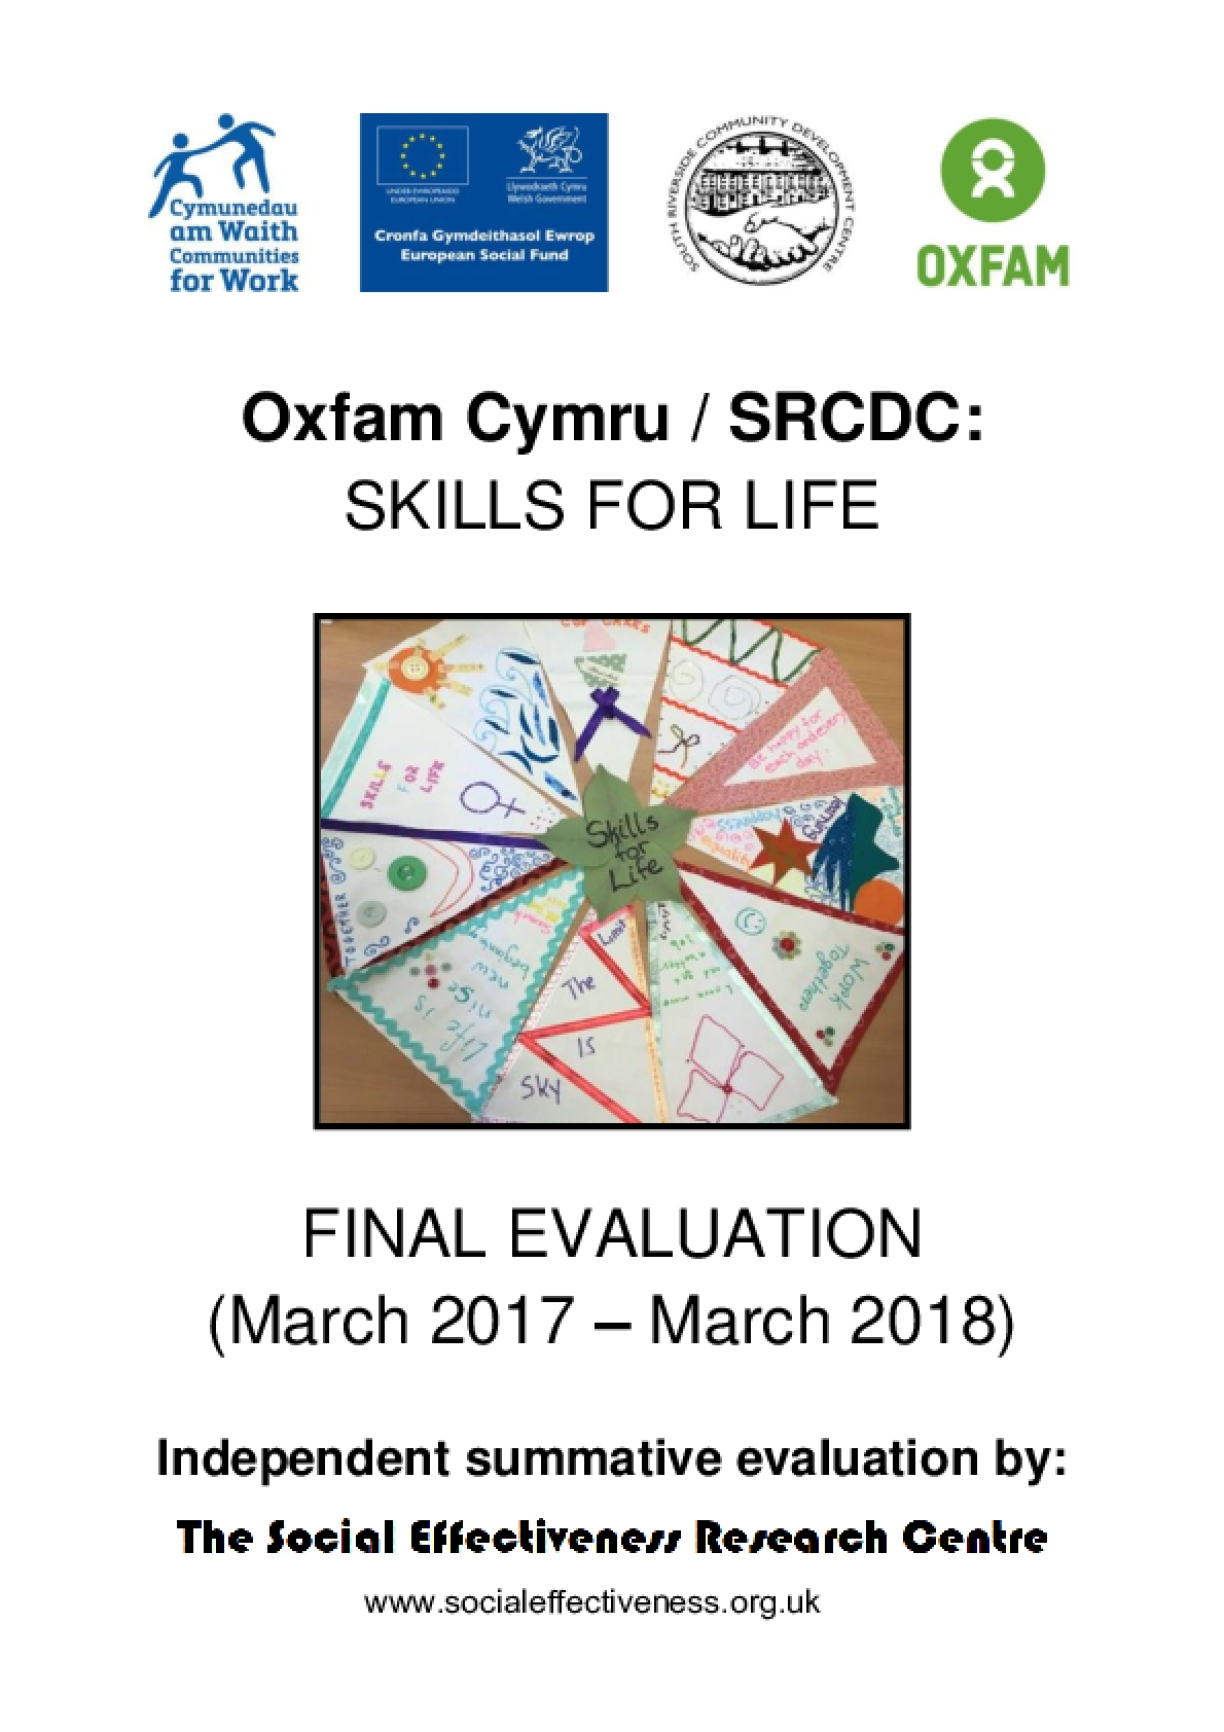 Oxfam Cymru and South Riverside Community Development Centre Skills for Life Project: Final evaluation report